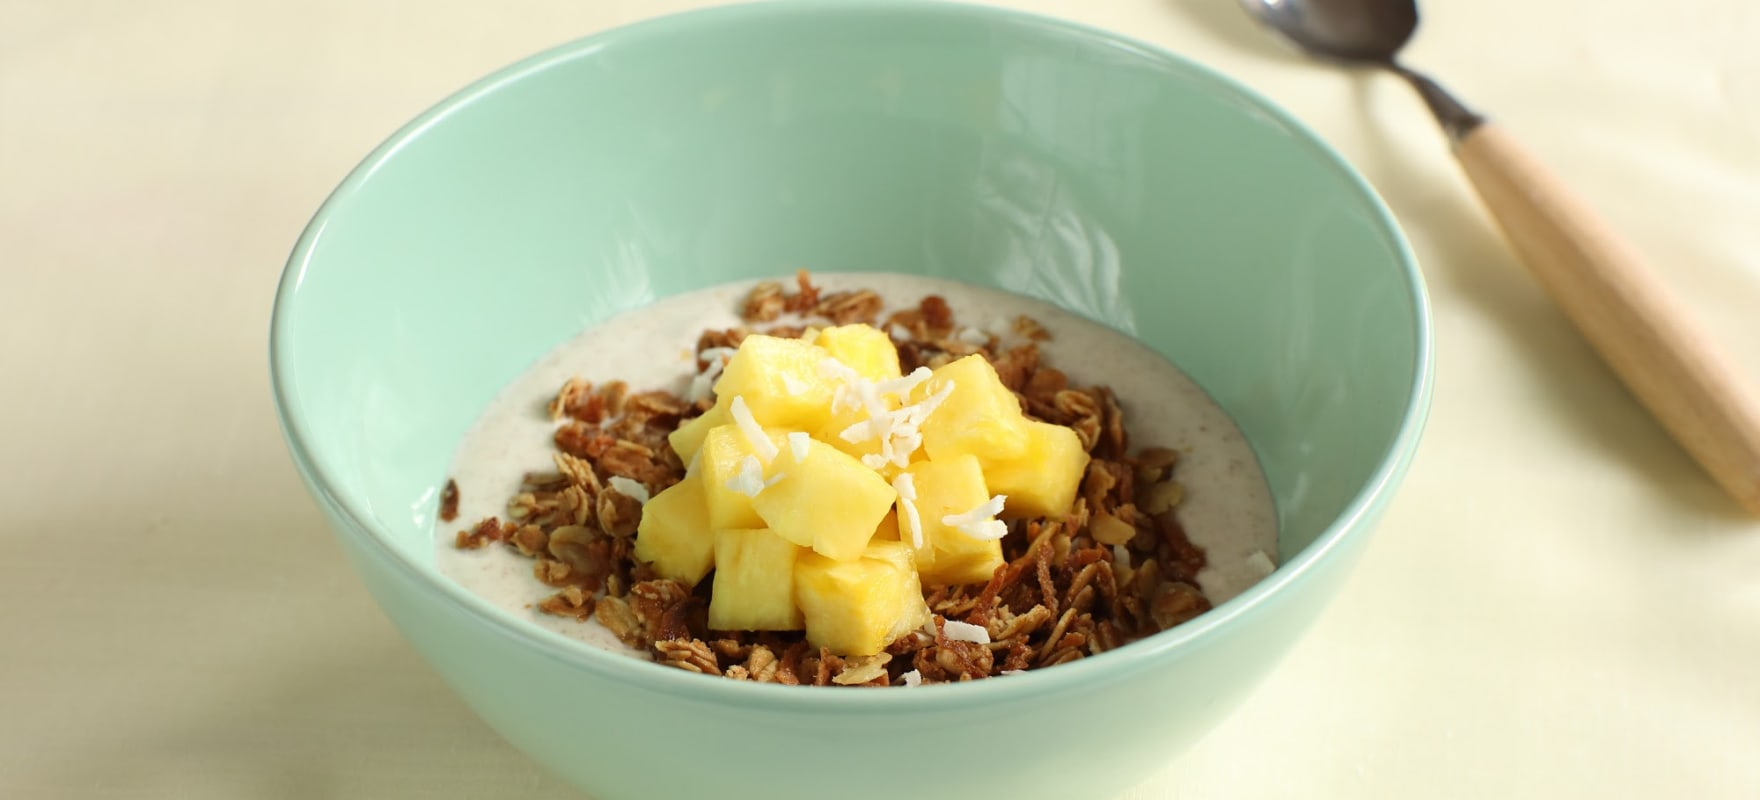 Tropical fruit with coconut crumble & cinnamon yoghurt image 1